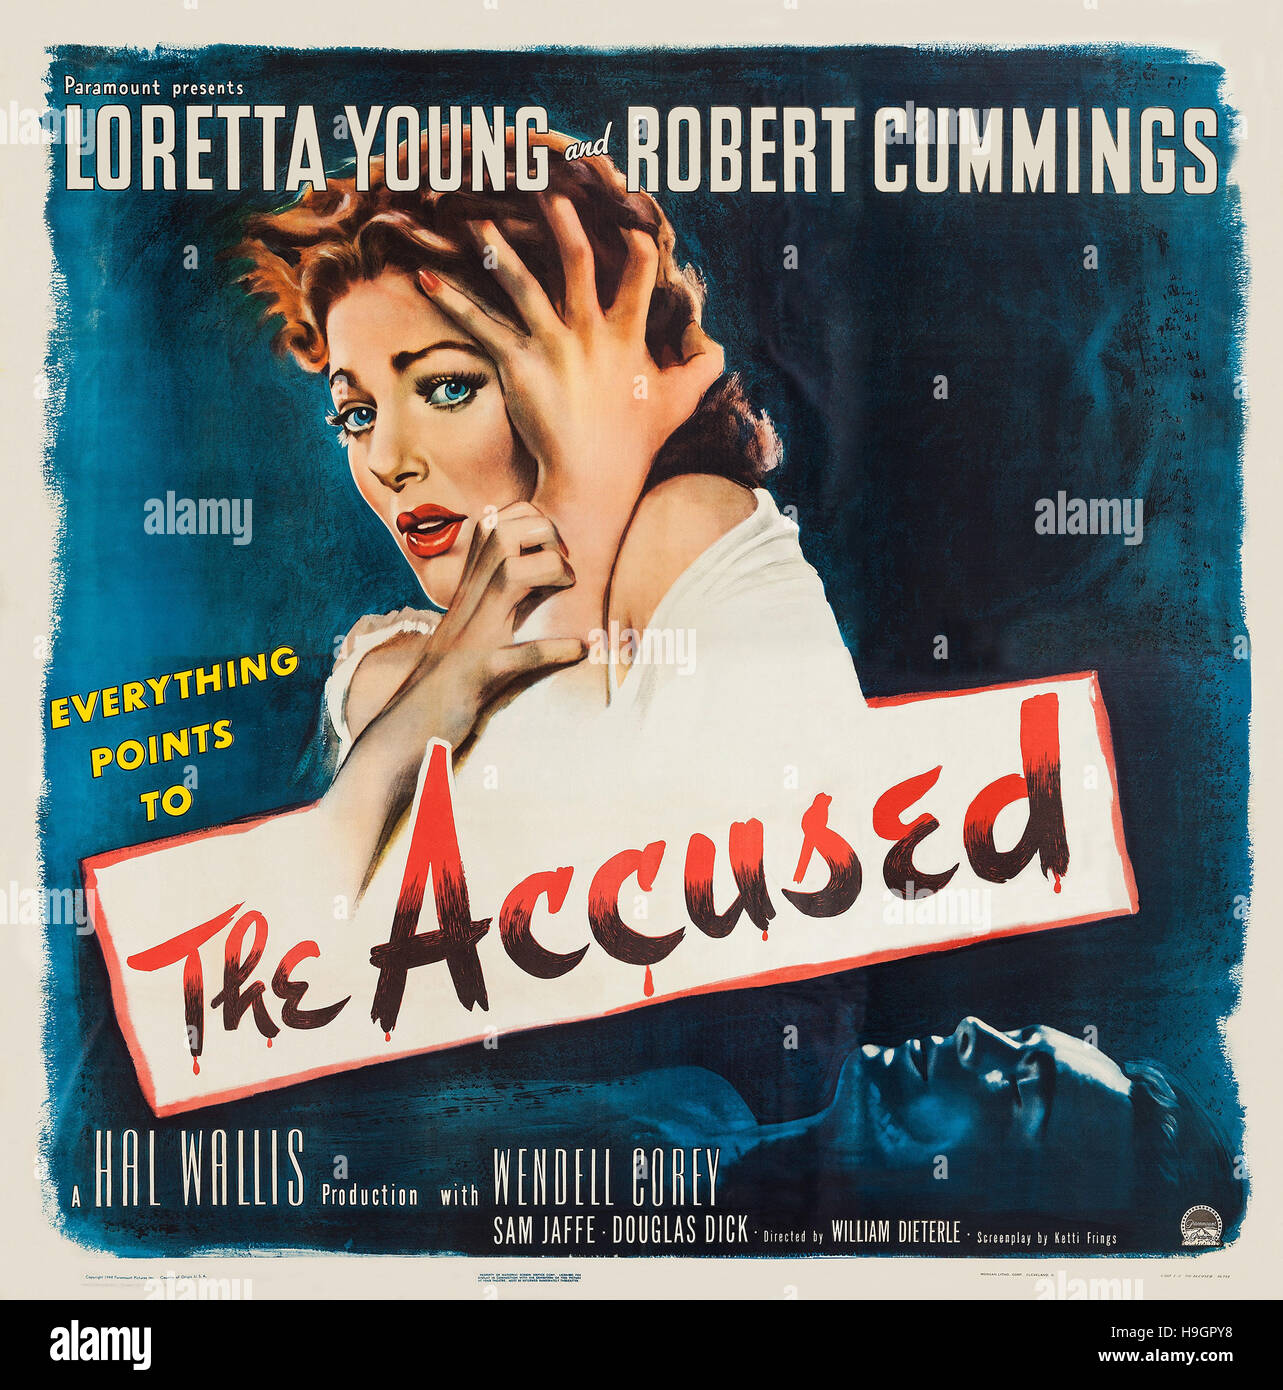 the accused 1949 paramount pictures film loretta young stock stock photo the accused 1949 paramount pictures film loretta young